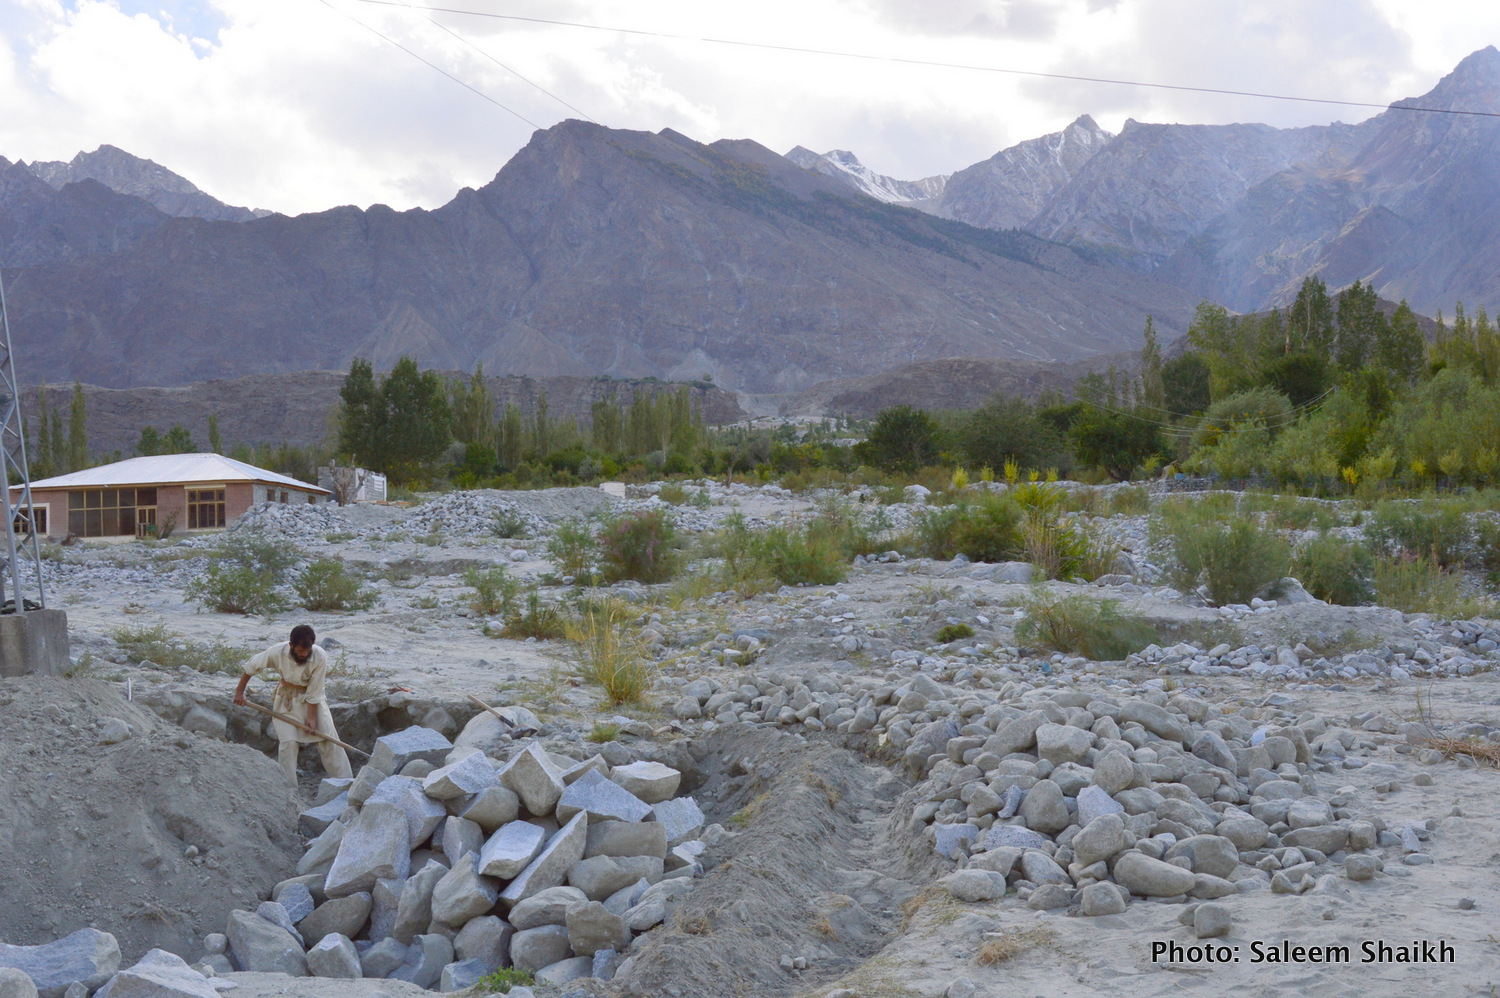 A farmer struggles to reclaim his field by spading away silt deposited on his field in flood-prone Damaas village in picturesque valley of Gizer district, Pakistan's north. Traditionally, the village is located in non-flood area. But three floods have hit it in 2006, 2010 and 2015, respectively, with 2010 flood being the most devastating. Photo credit: Saleem Shaikh